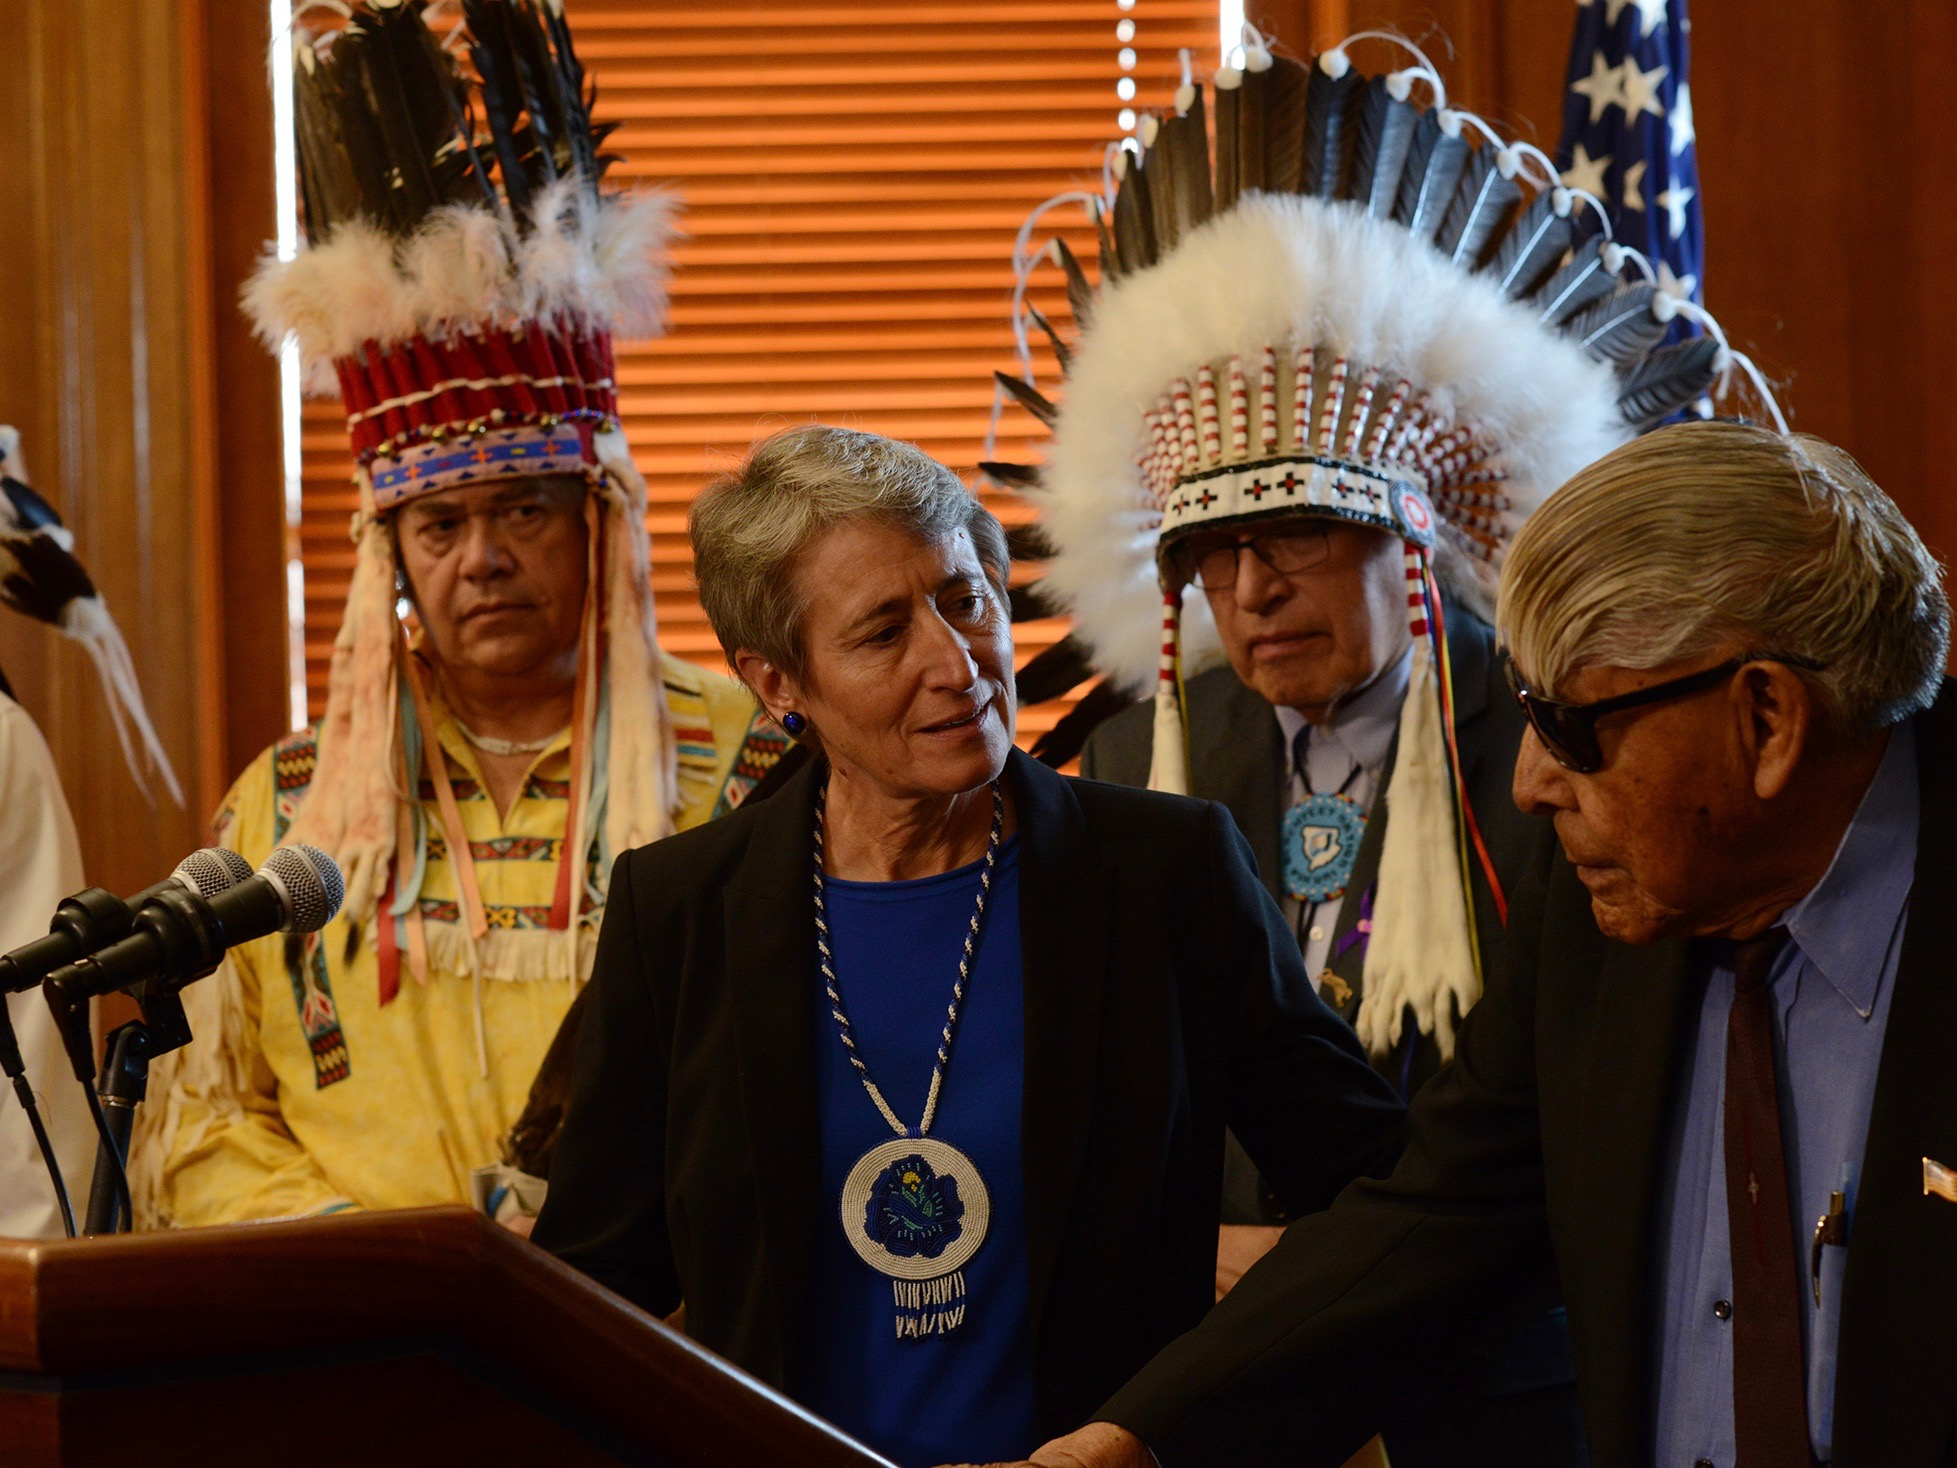 Blackfeet Nation scores victories on sacred sites and water rights